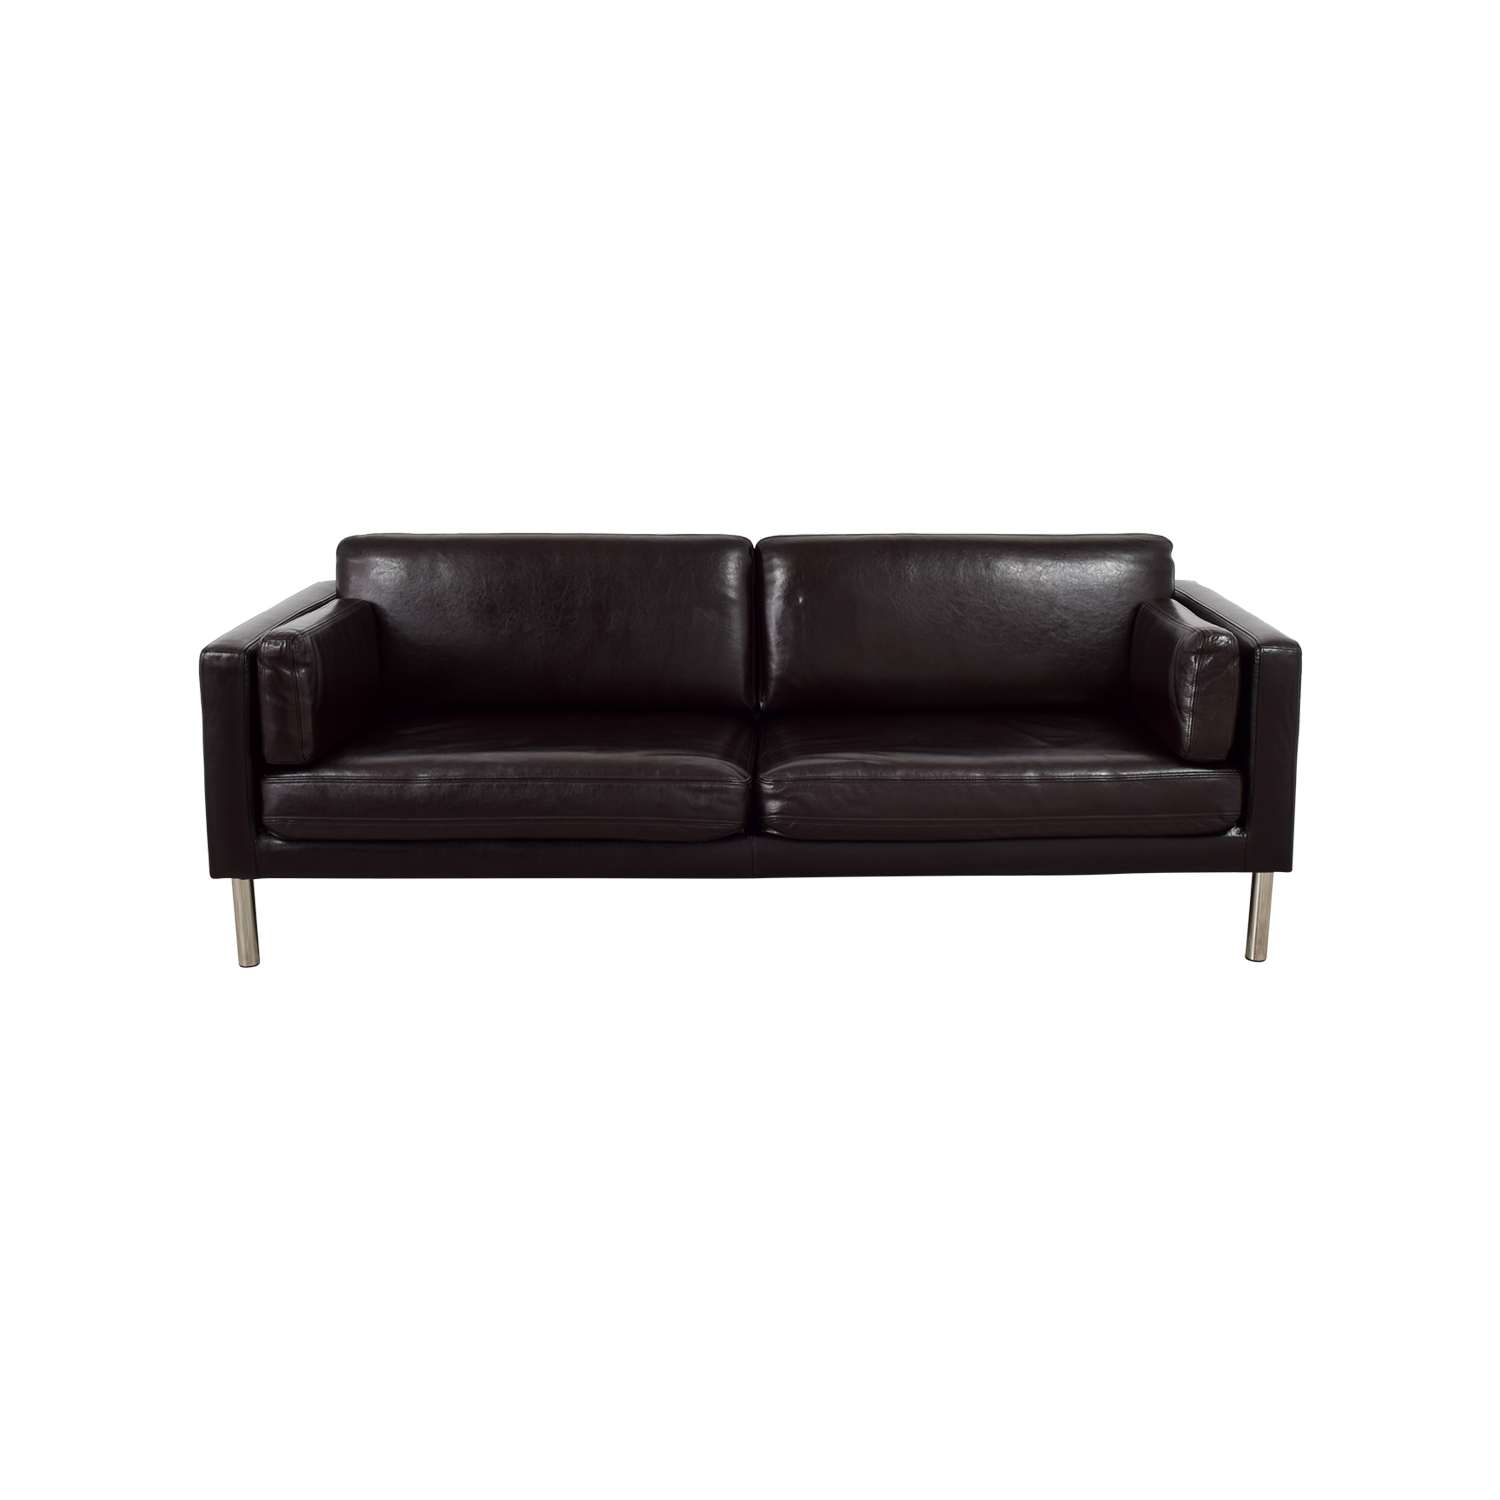 Ledersofa Ikea Säter 41 Off Ikea Ieka Sater Brown Leather Couch Sofas